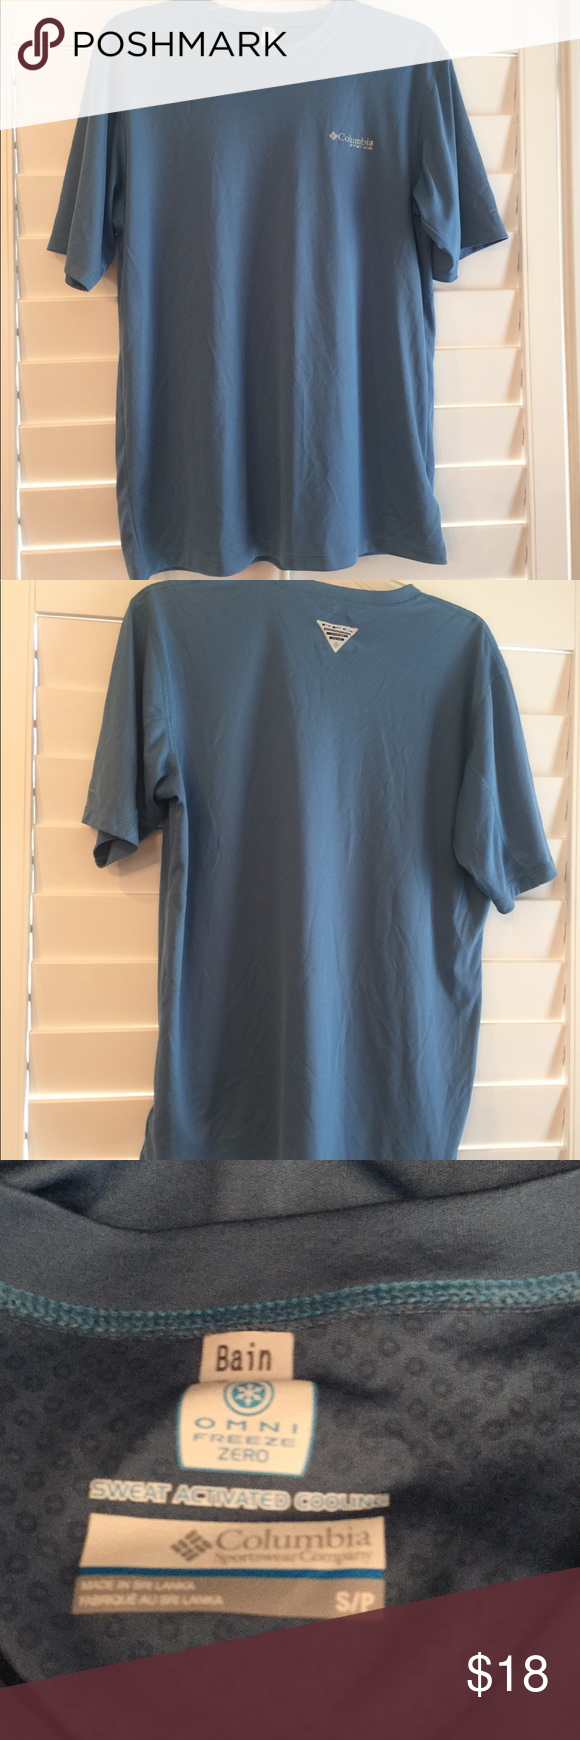 Columbia Pfg Freeze Zero Cooling Shirt Sz S With Images Cool